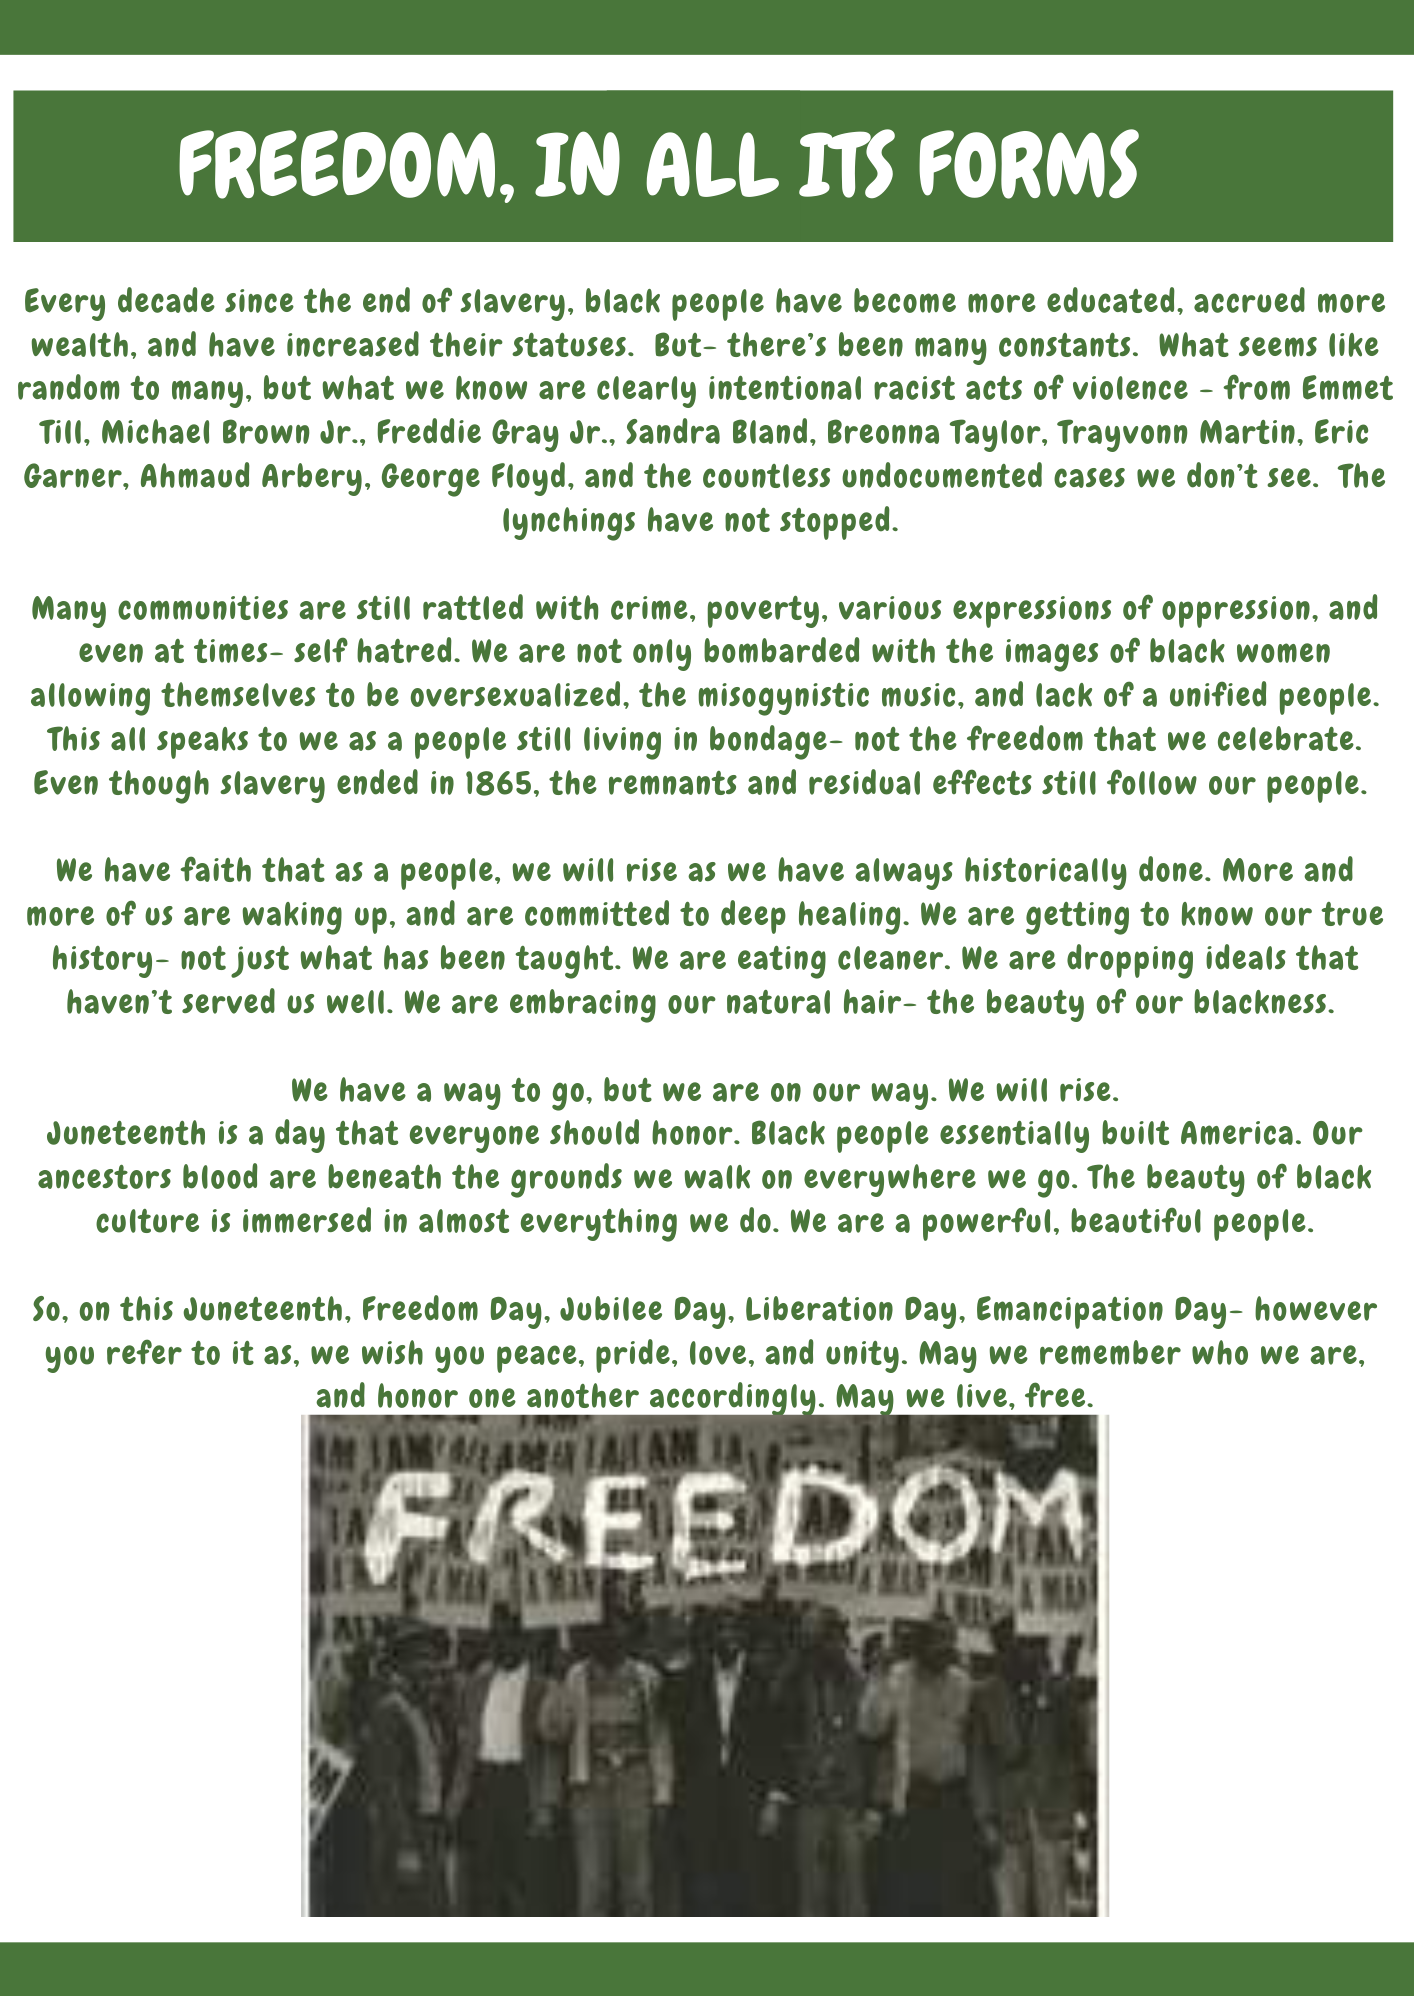 Fruits N' Rootz | Juneteenth Freedom Day